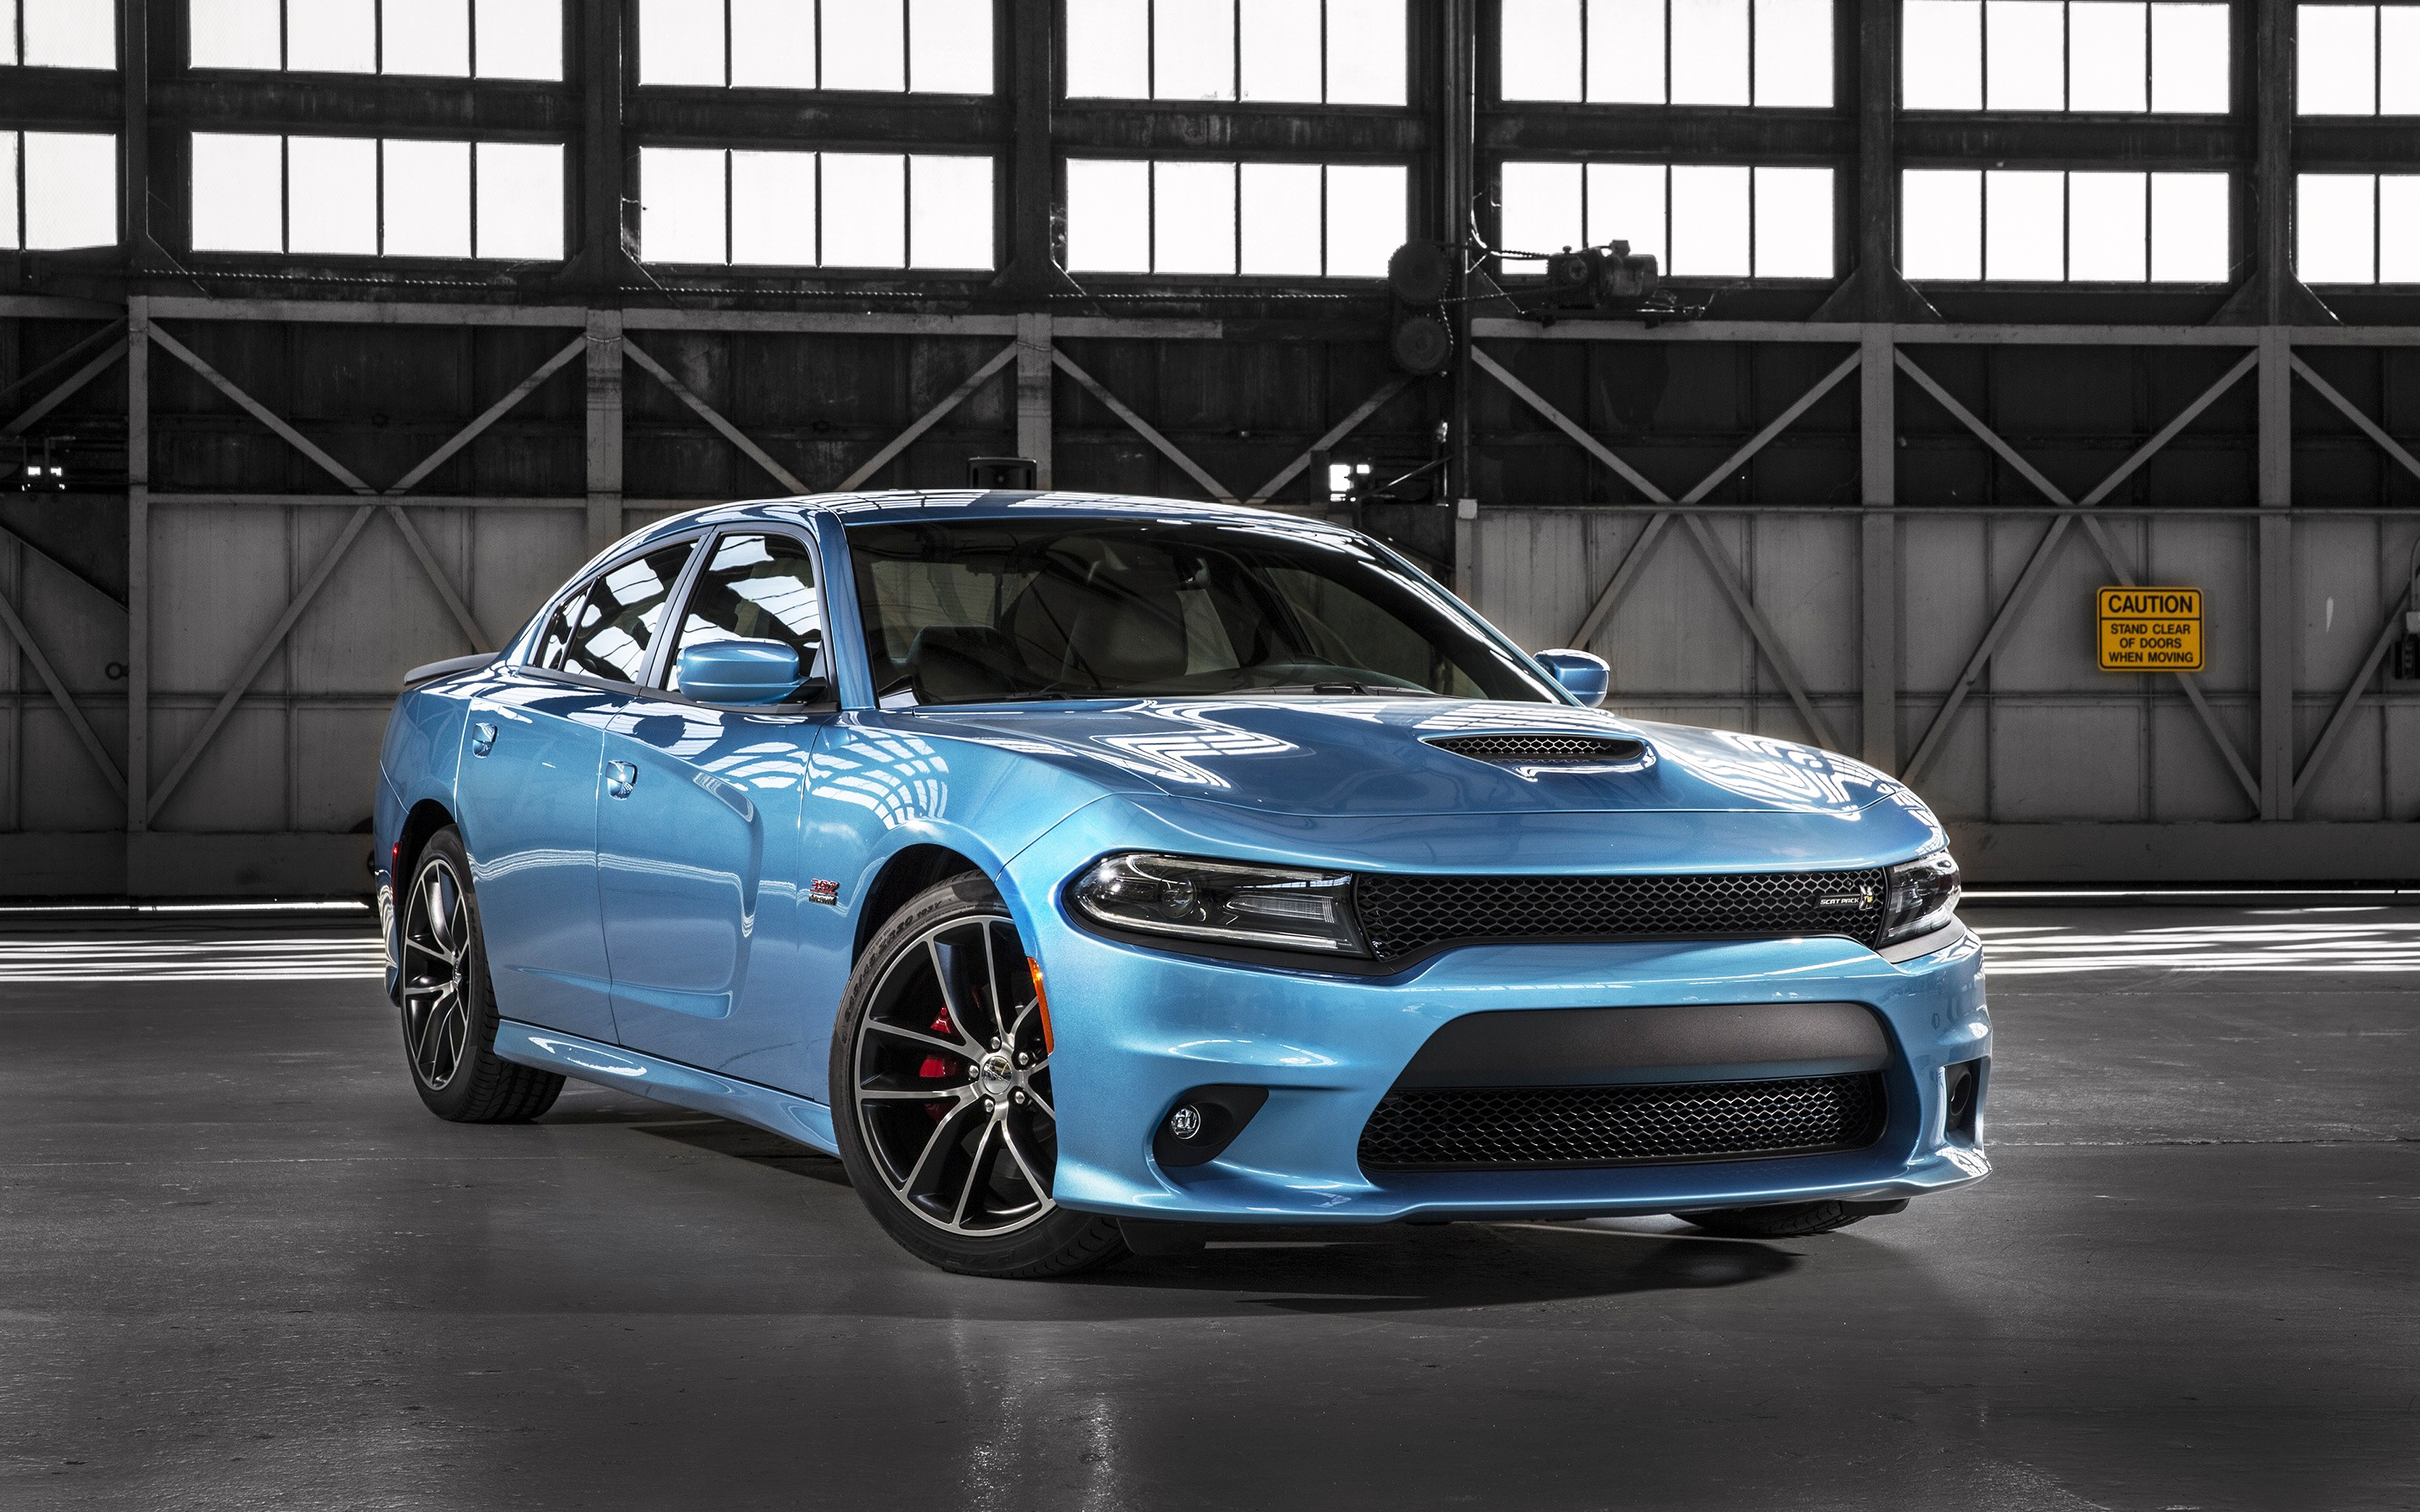 2015 Dodge Charger RT Scat Pack Wallpaper HD Car Wallpapers 2880x1800